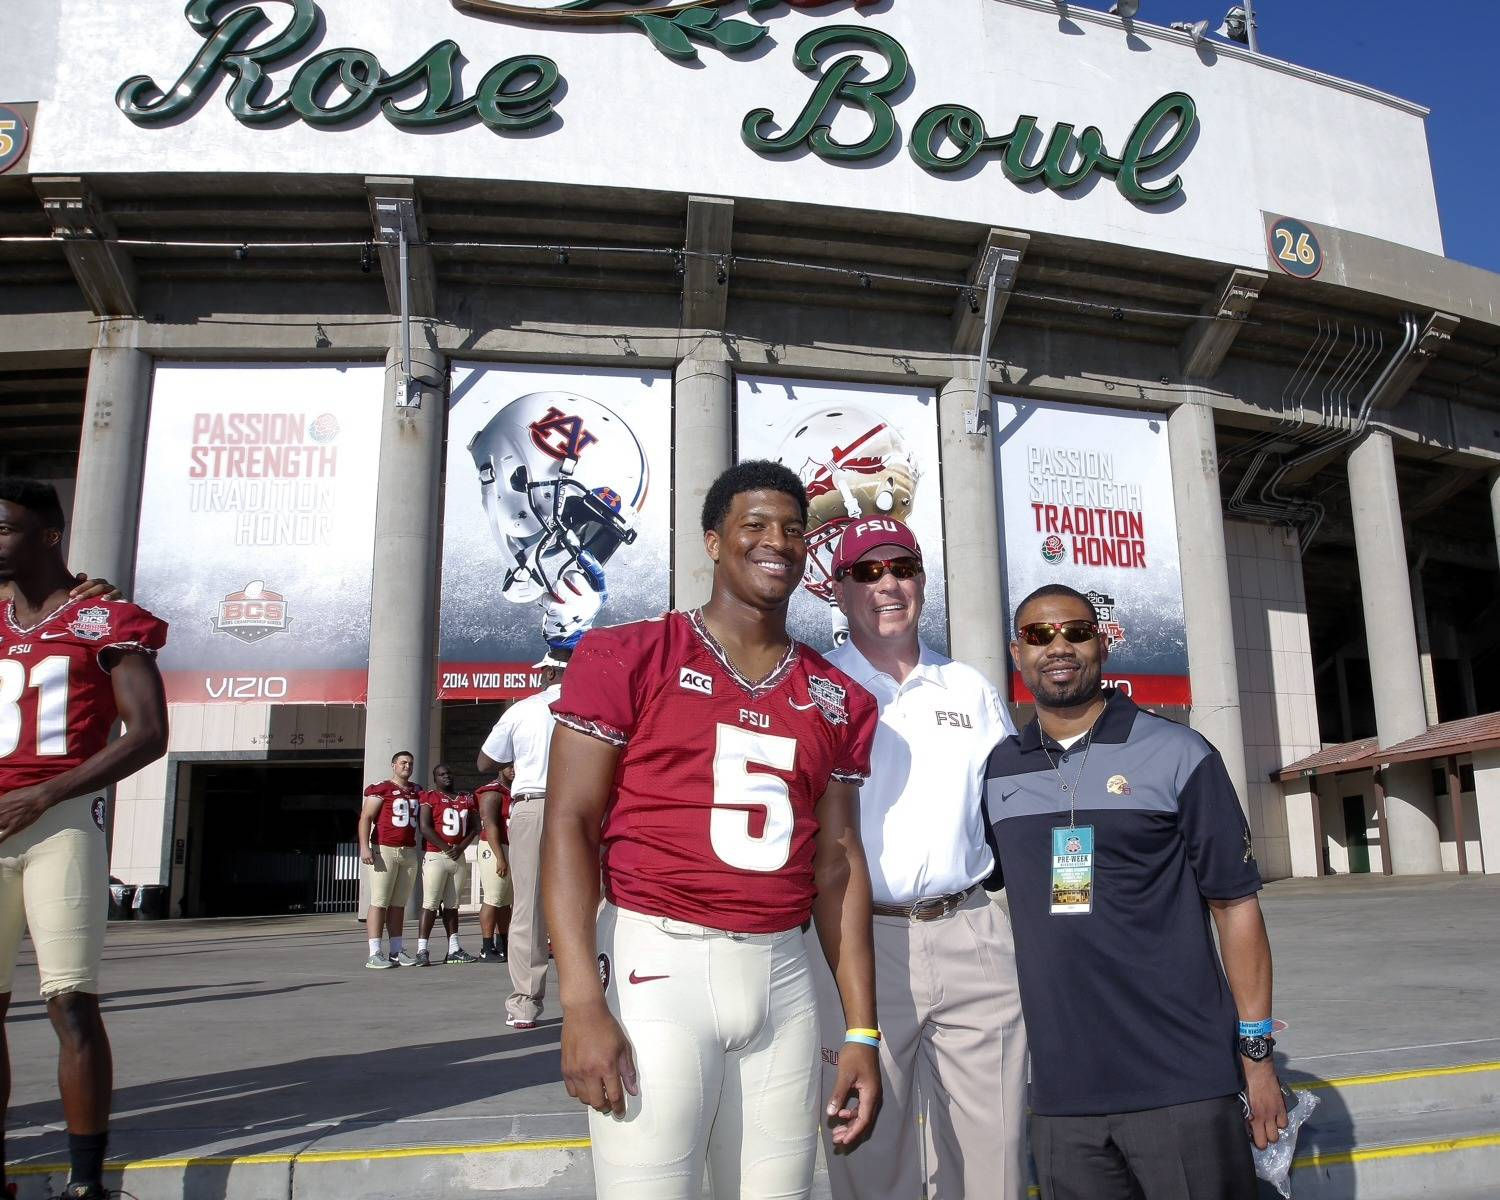 Jameis Winston, Jimbo Fisher, and Kerwin Lonzo